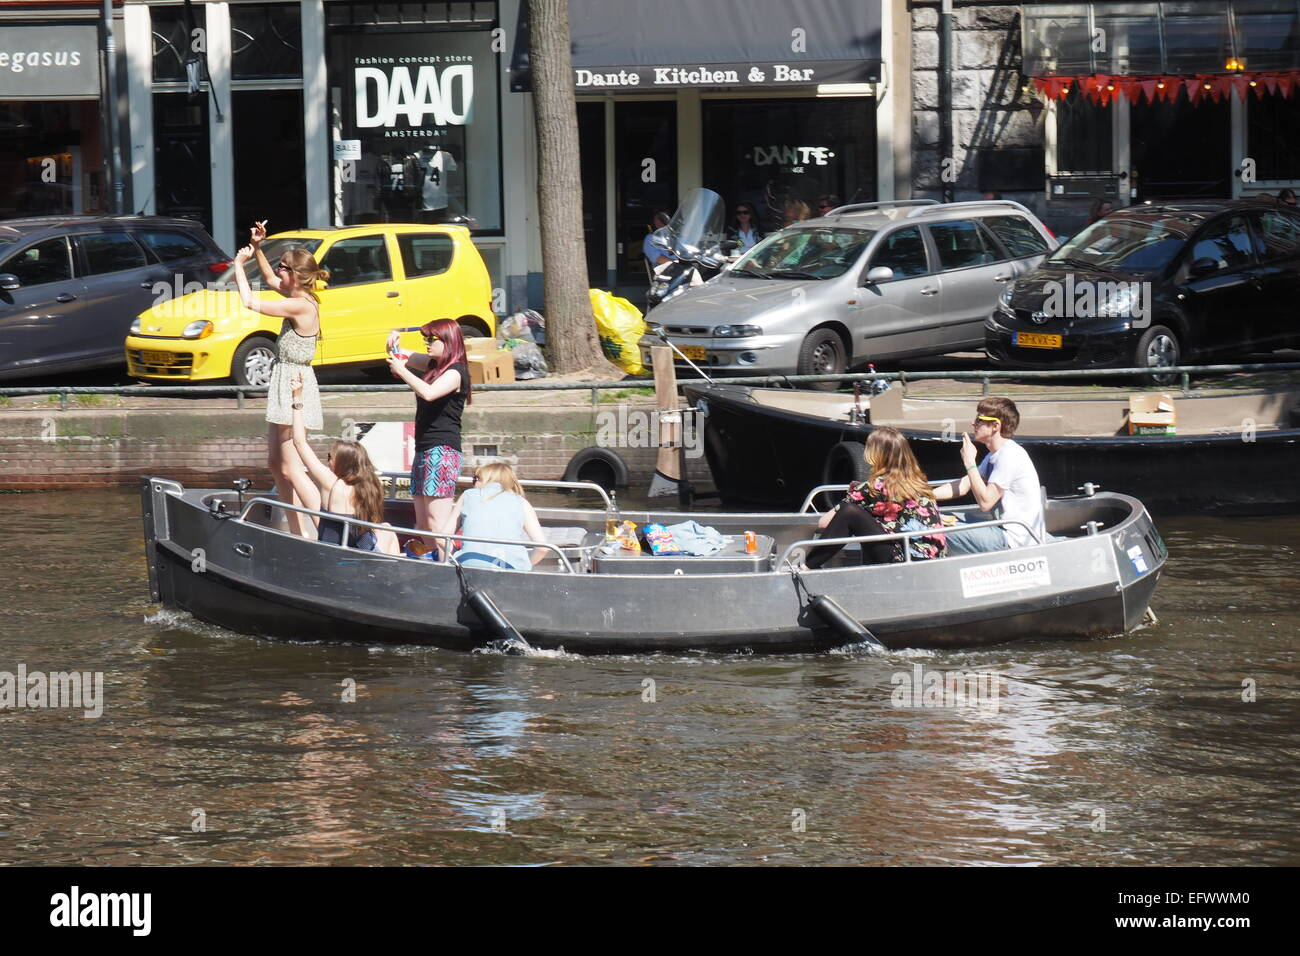 Young adults partying on a boat in an Amsterdam canal. - Stock Image